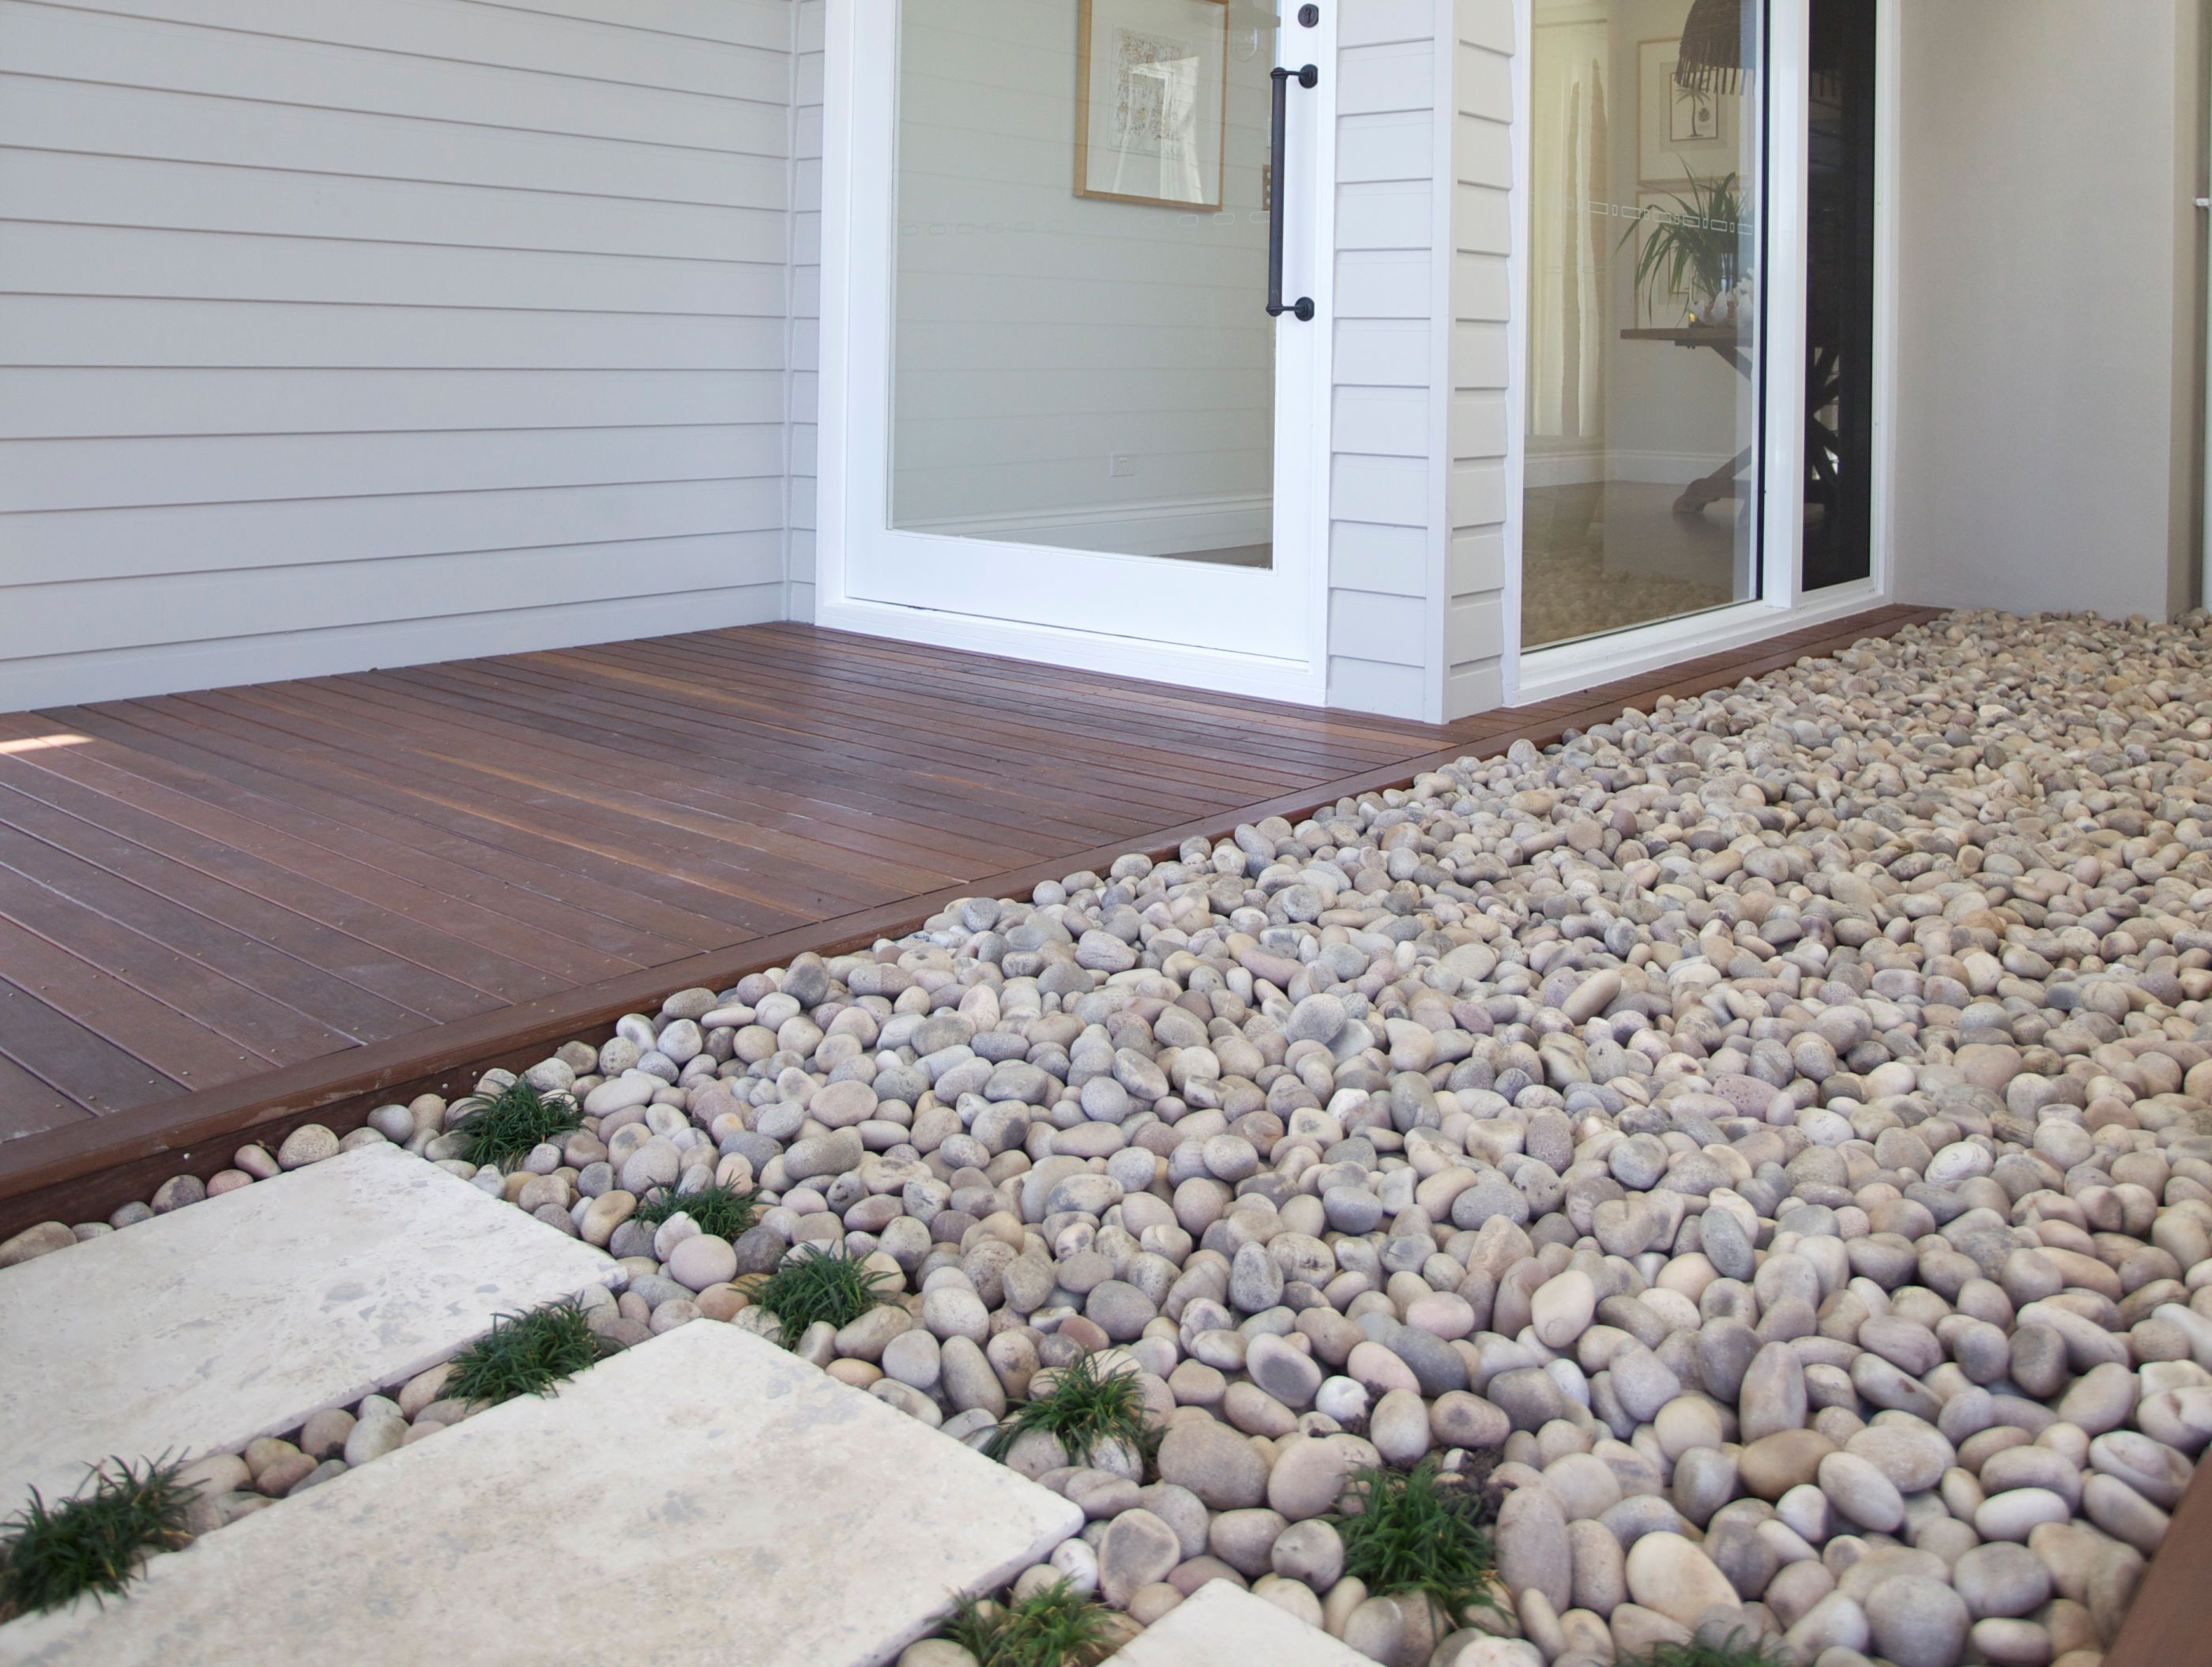 Eggshell Pebbles Natural Stone Flooring By Natural Stone Flooring Stone Flooring Outdoor Flooring